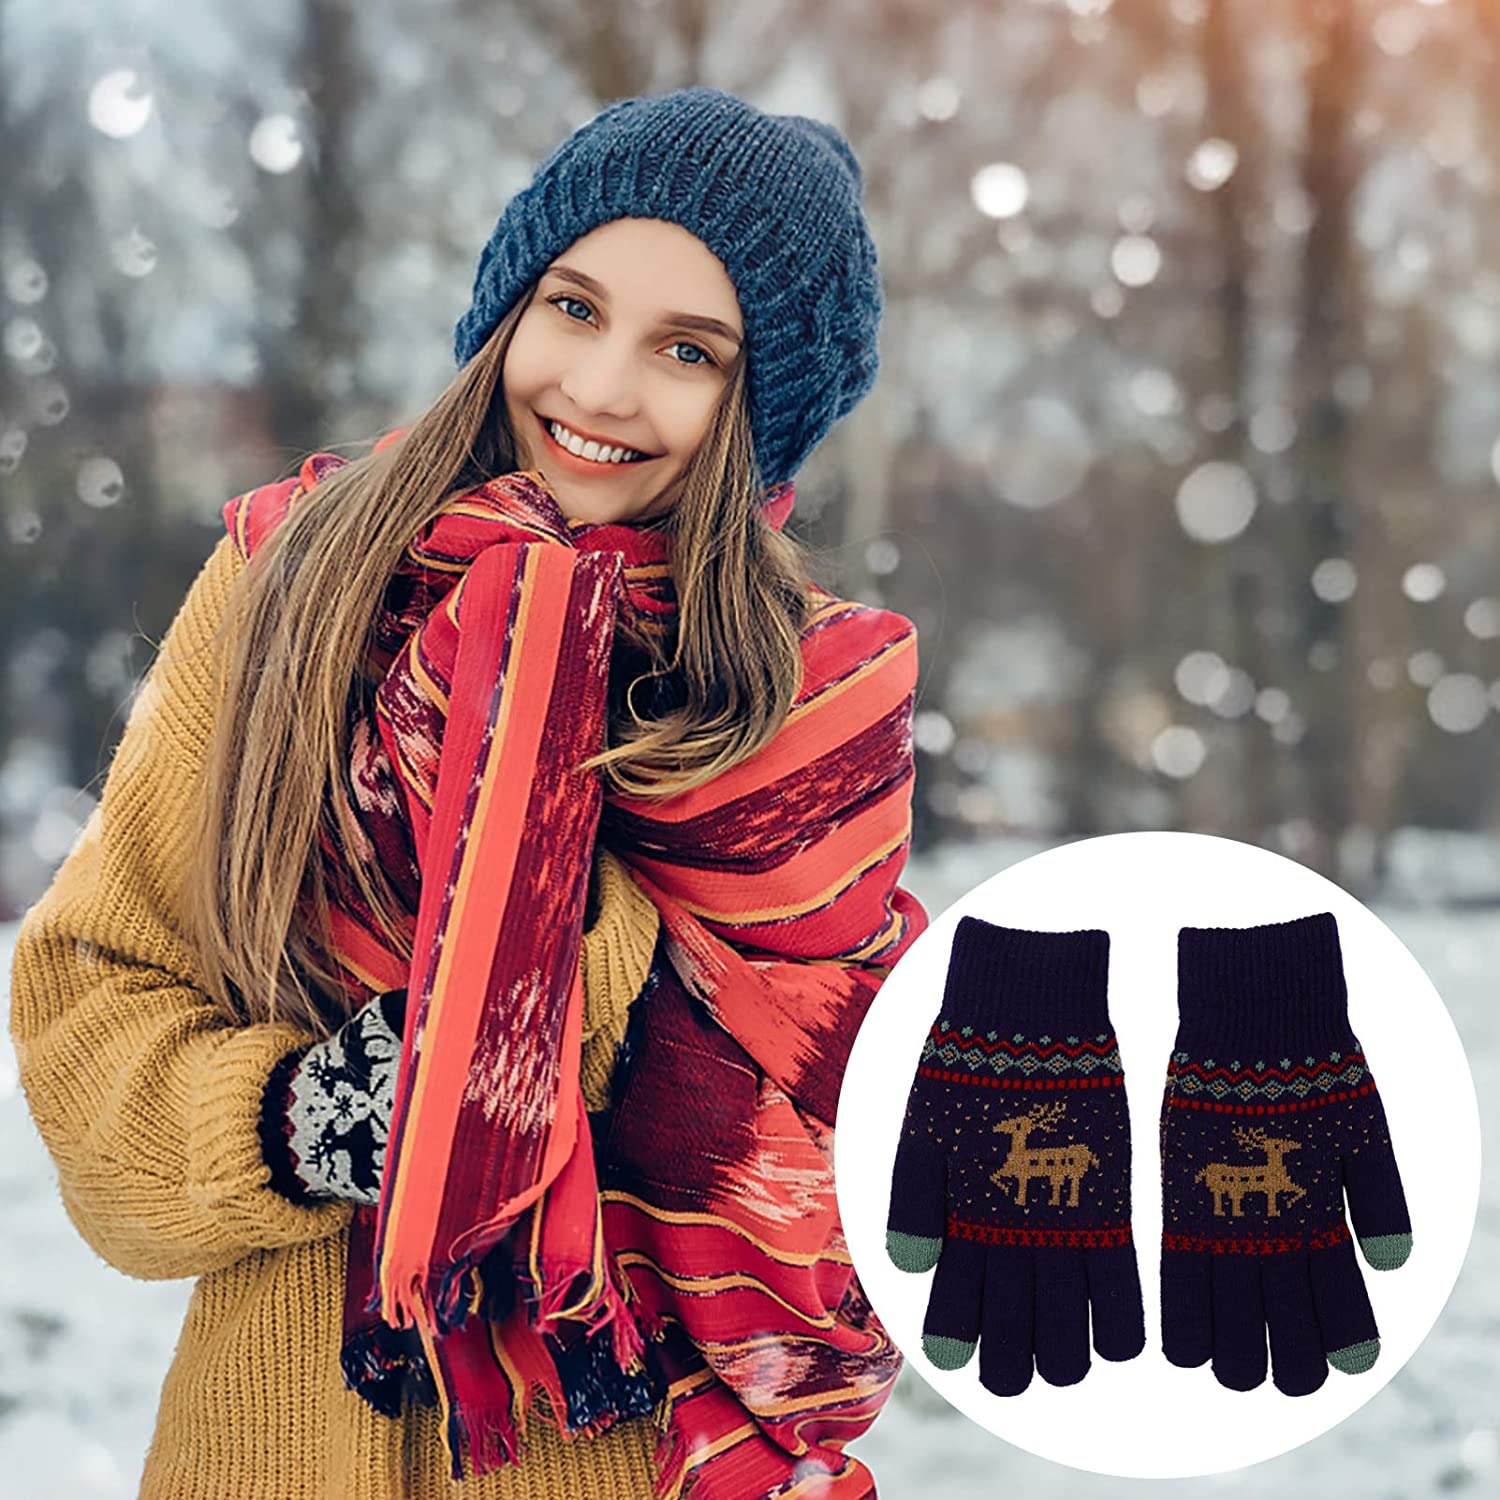 VALICLUD 4 Pairs Winter Knitted Gloves Elk Pattern Mittens Warm Thicken Windproof Touch Screen Full Finger Gloves for Unisex Winter Autumn